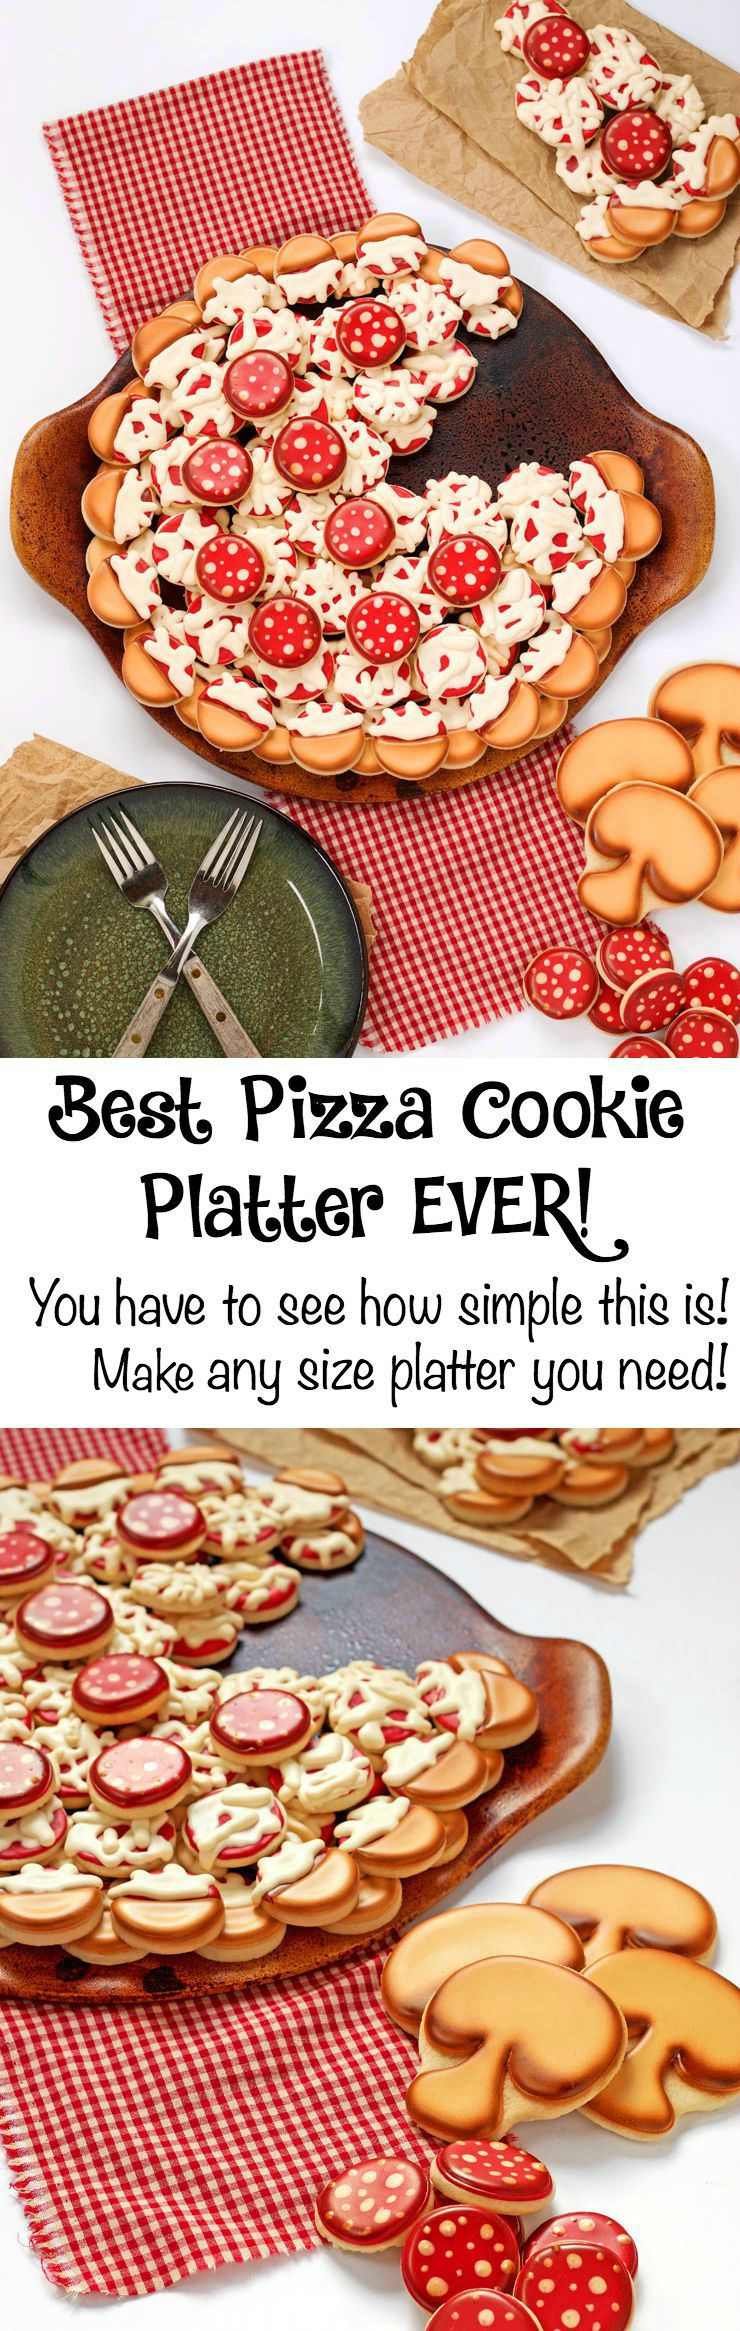 Pizza Cookie Platter via www.thebearfootbaker.com